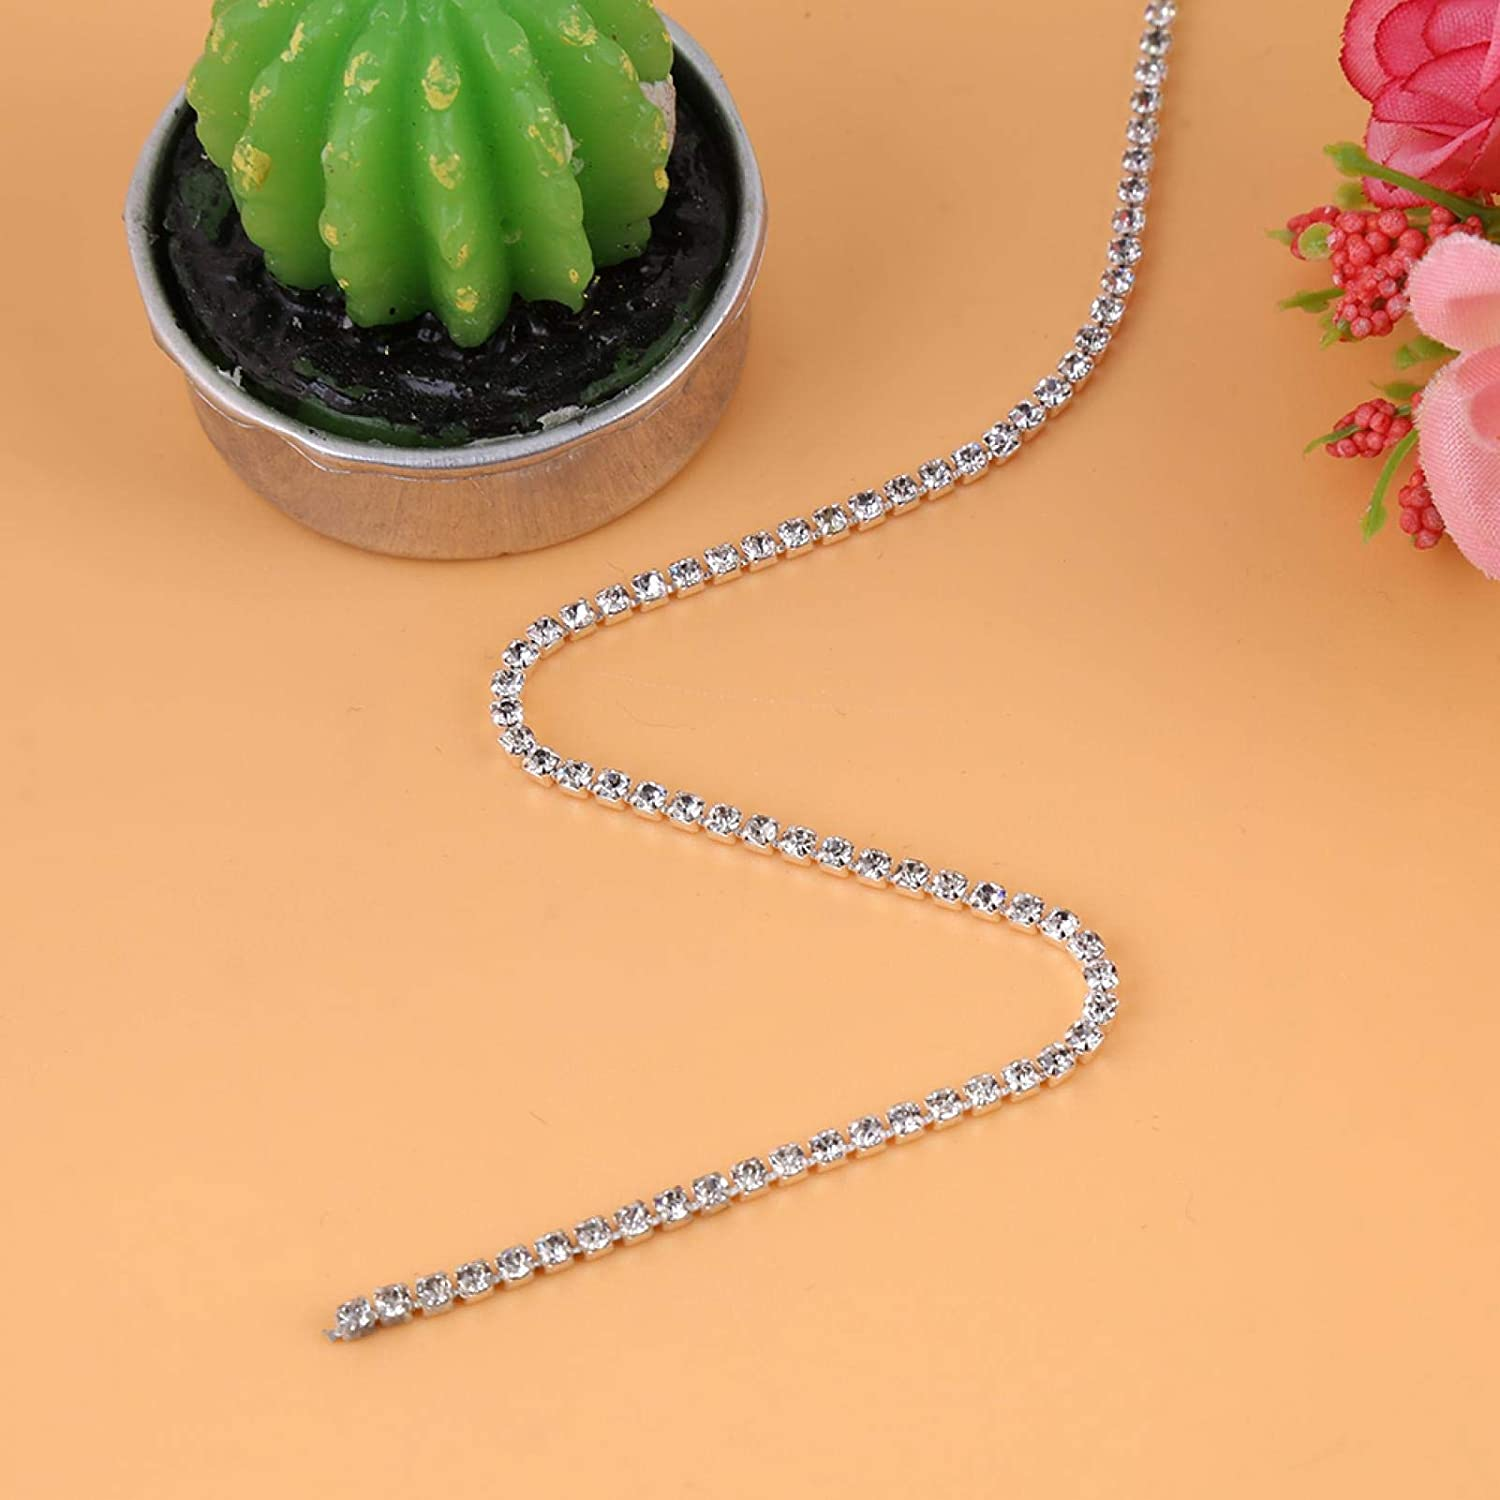 Rhinestone Chain Metal Cup Dallas Mall New Shipping Free for J Clothes Case Phone